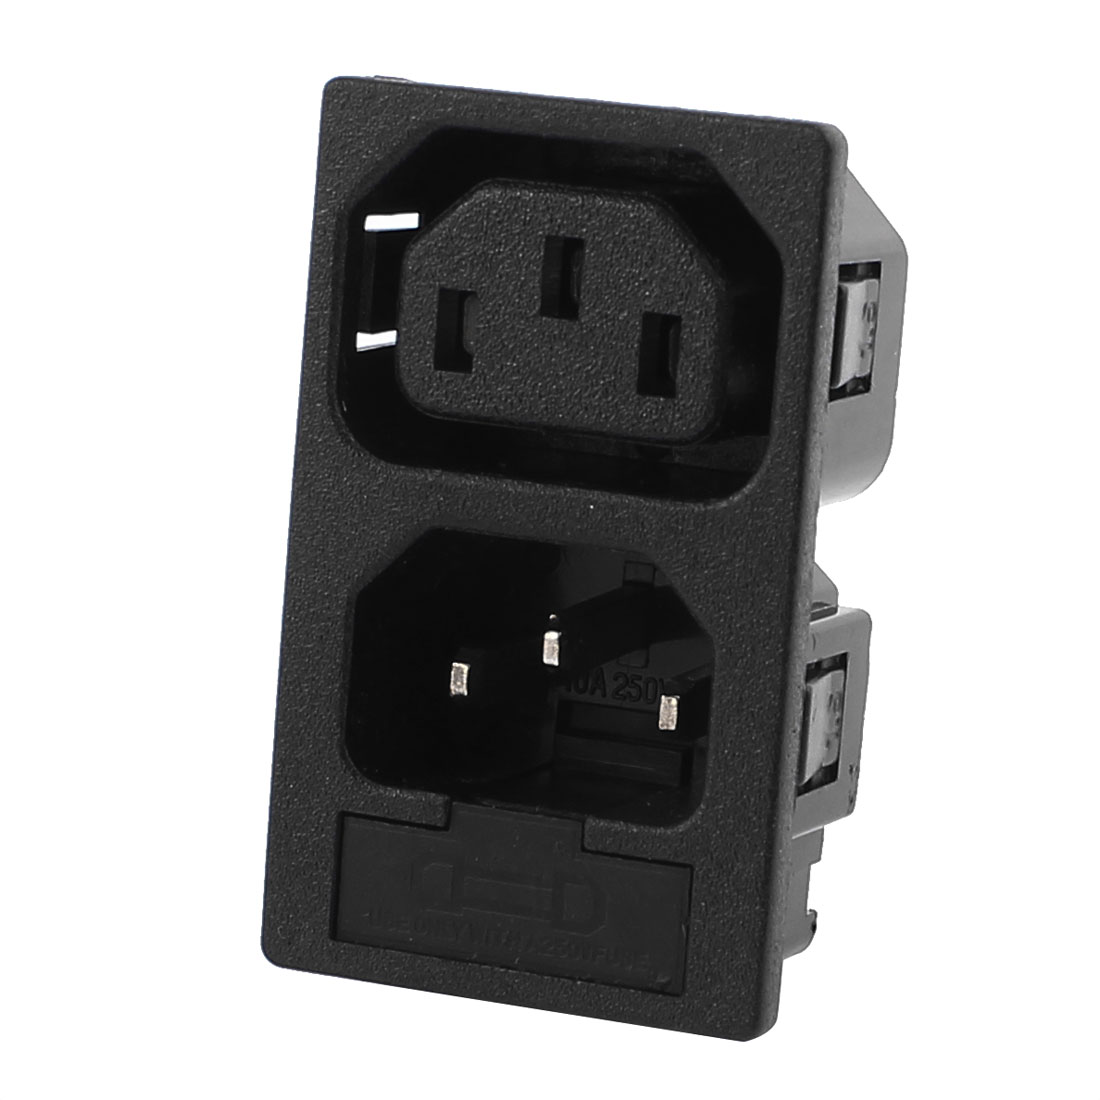 AC250V 10A 2 Way IEC C14 C13 Inlet Power Socket Adapter w Fuse Holder